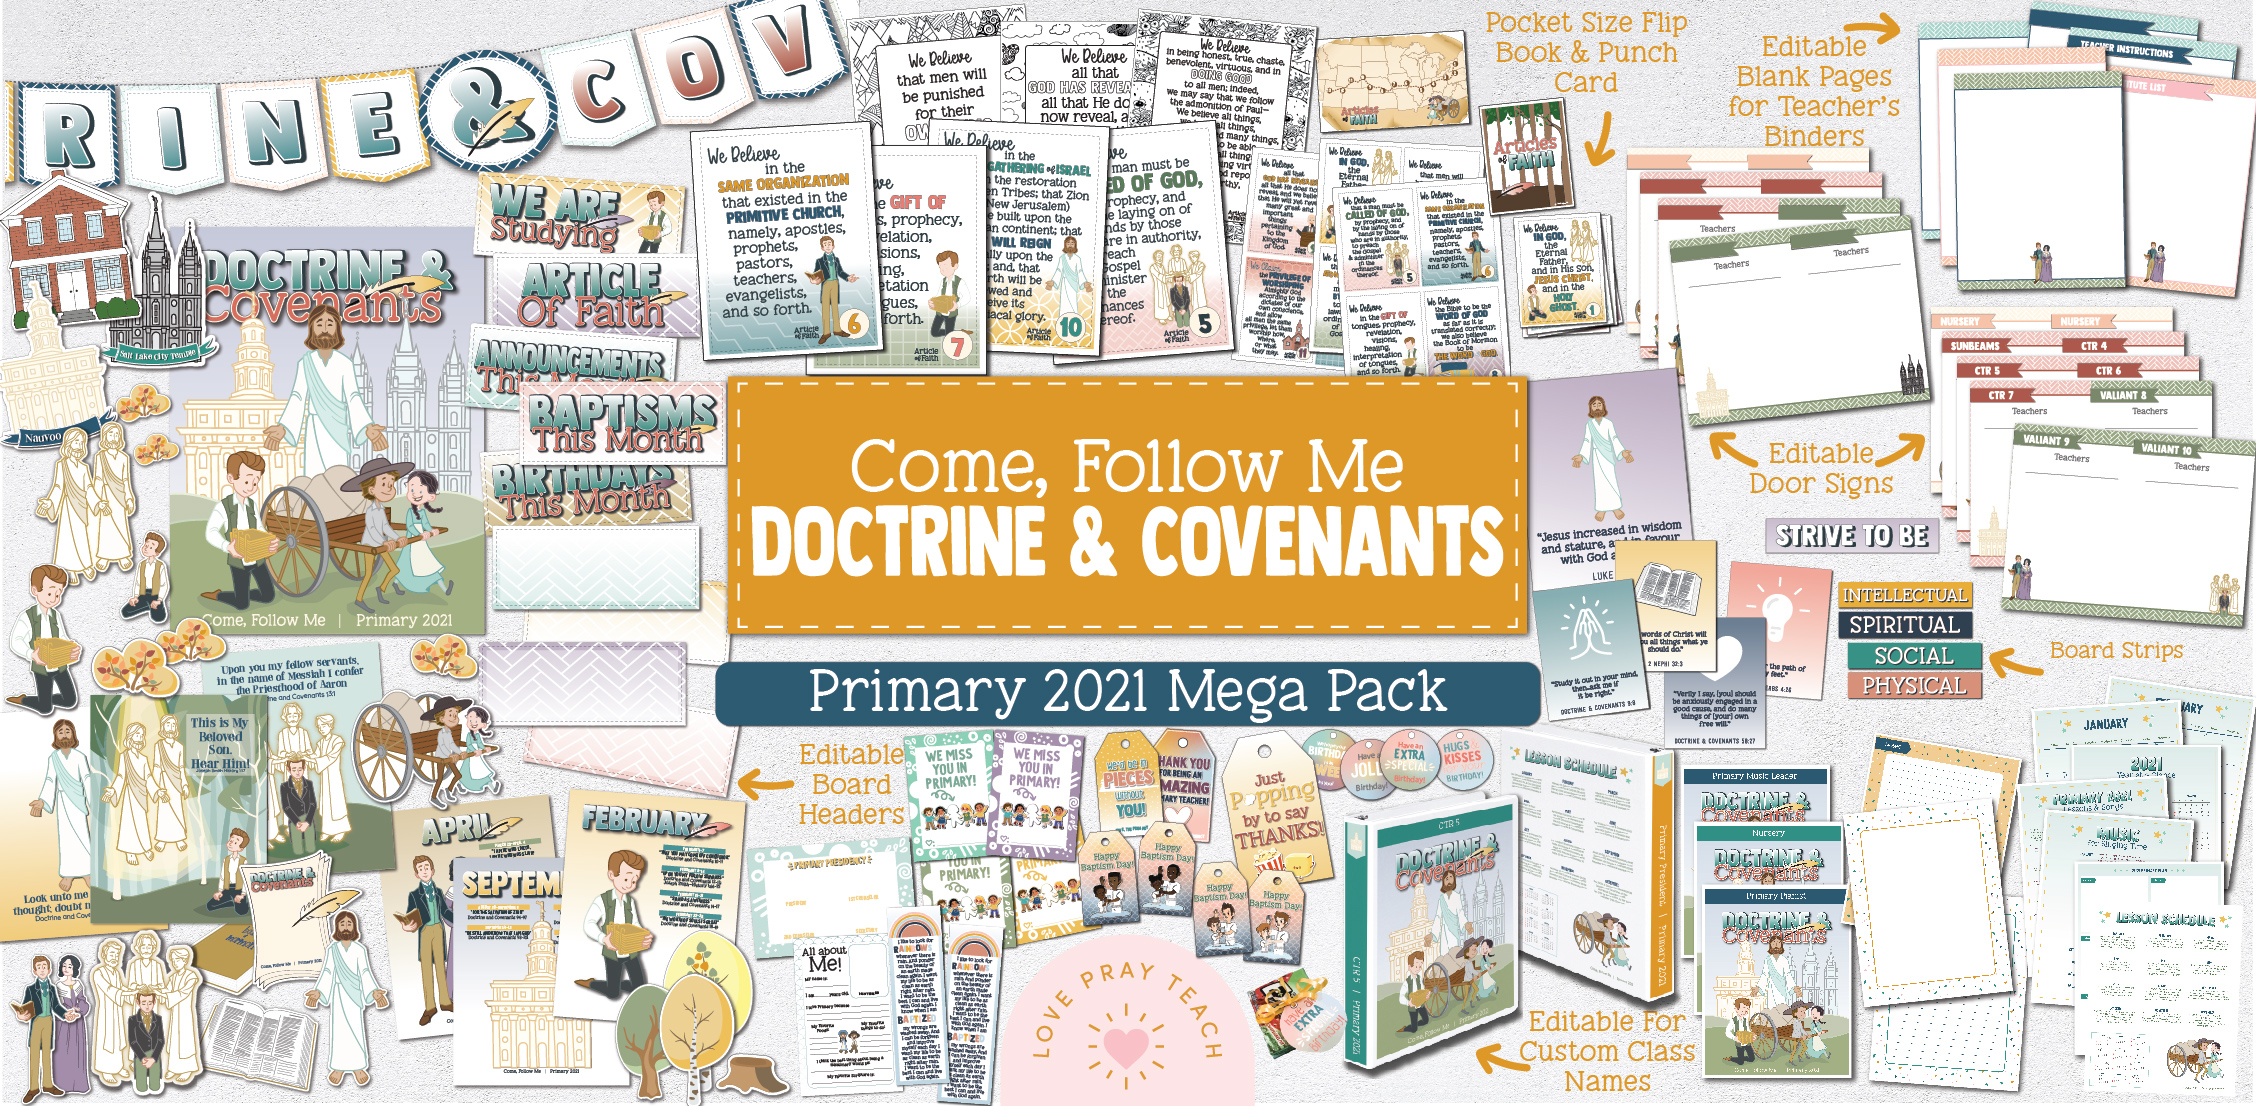 Come, Follow Me—For Primary 2021: The Doctrine & Covenants, Yearly Theme Packet for Subscribers